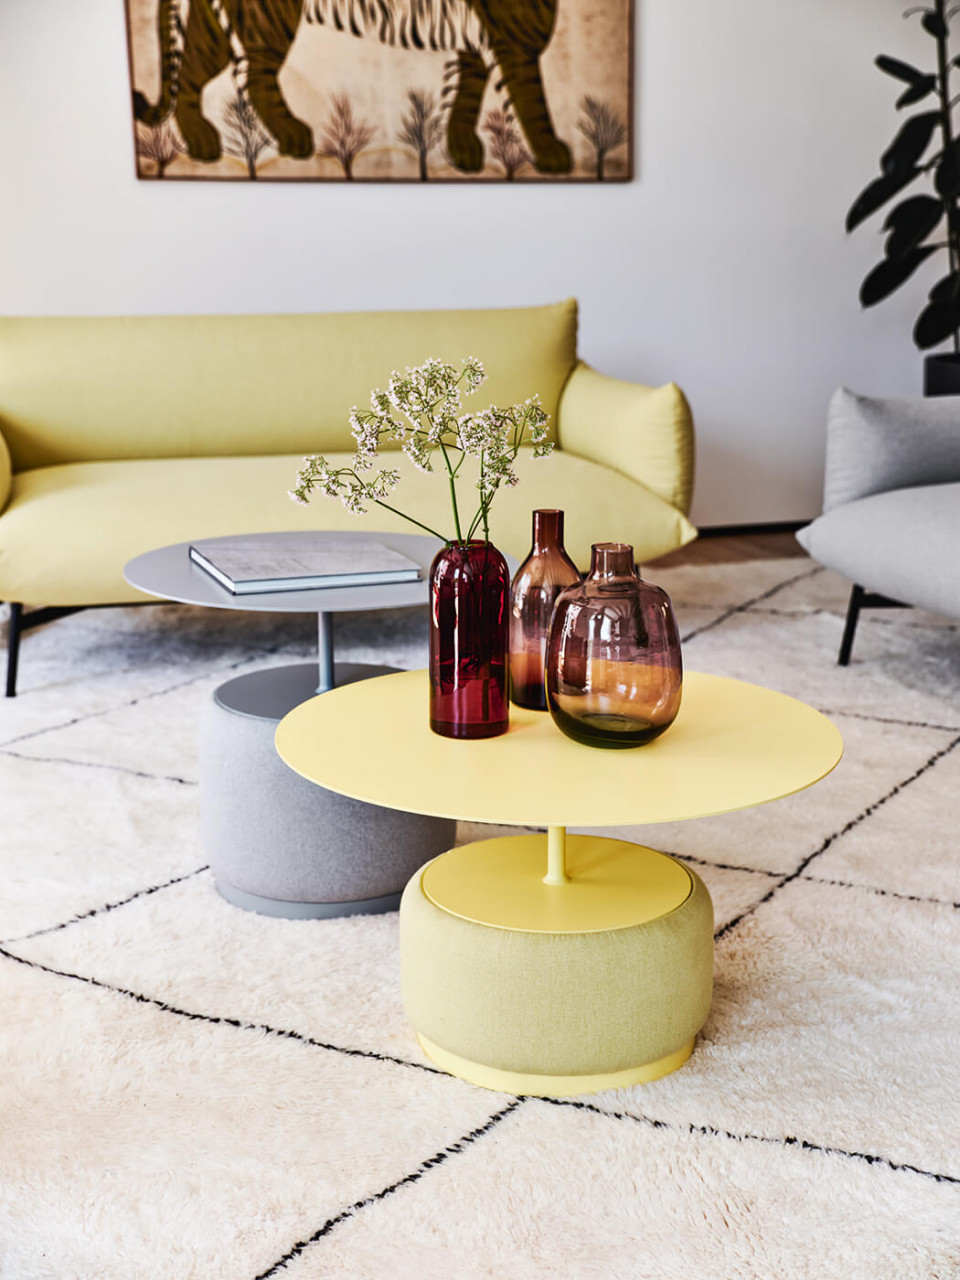 Bloom coffee tables in yellow and grey versions